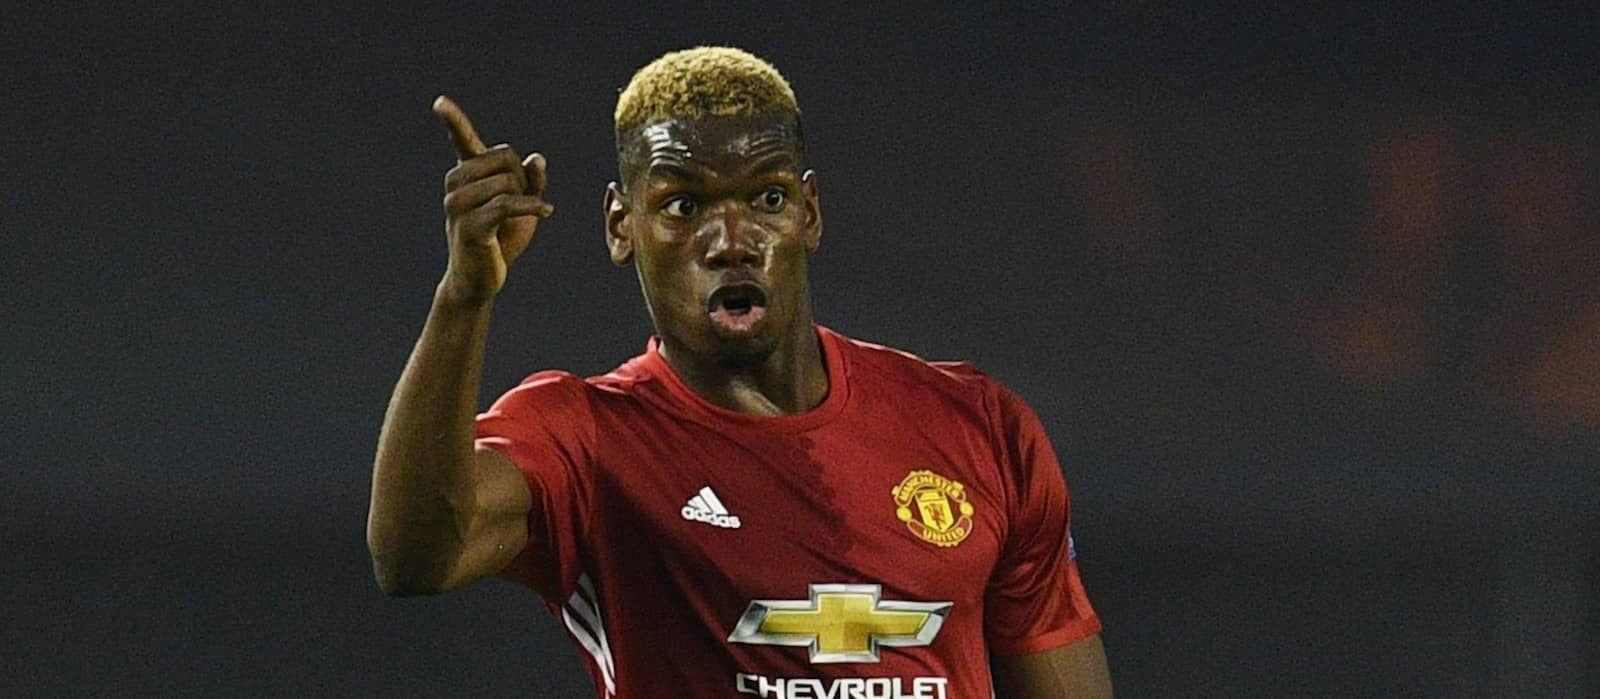 Manchester United fans delighted with dazzling Paul Pogba display against Manchester City